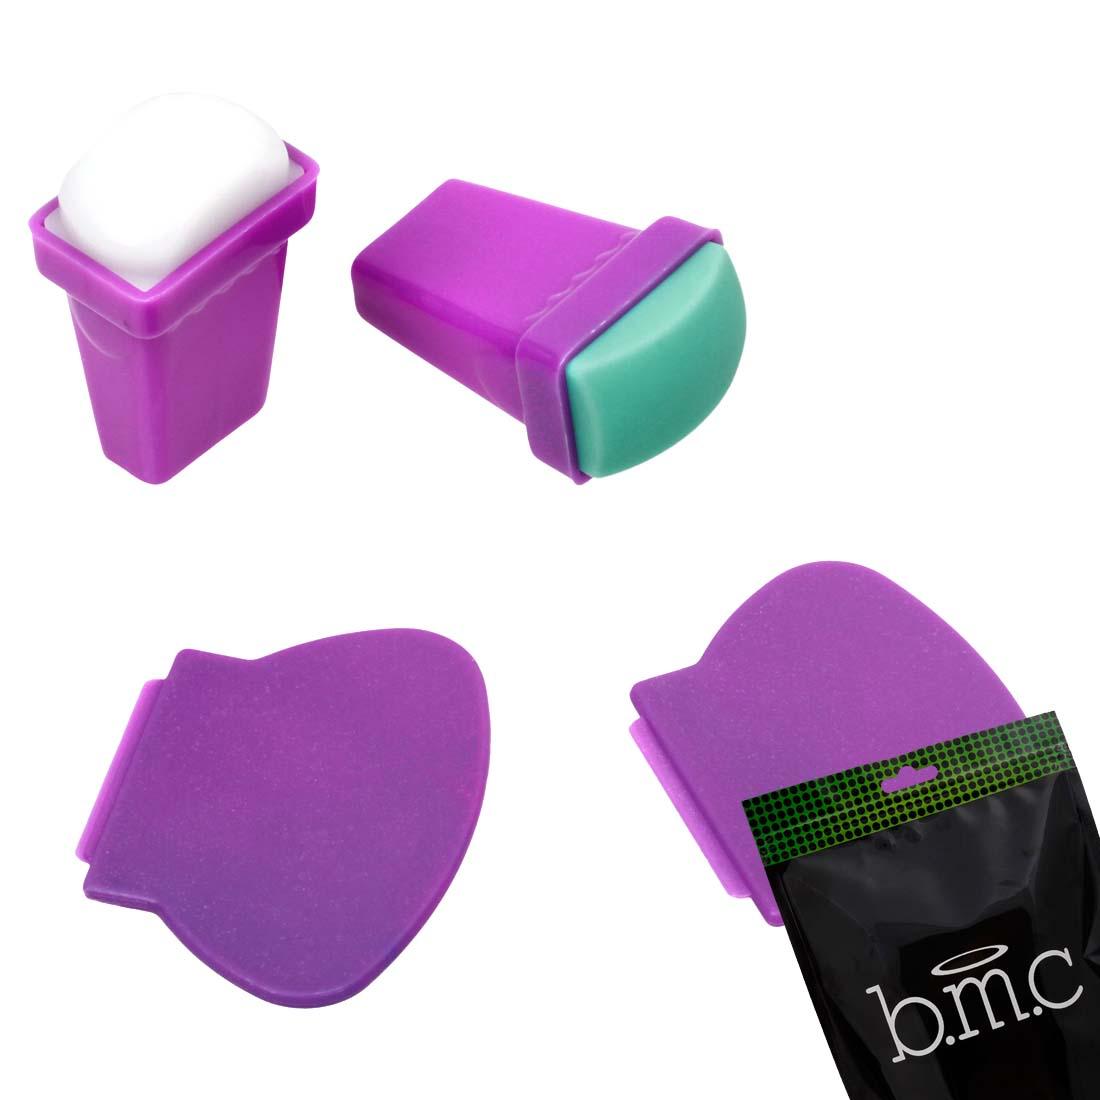 BMC 4pc Silicone and Rubber Stamper Plastic Scraper Nail Art Stamping Tools Set